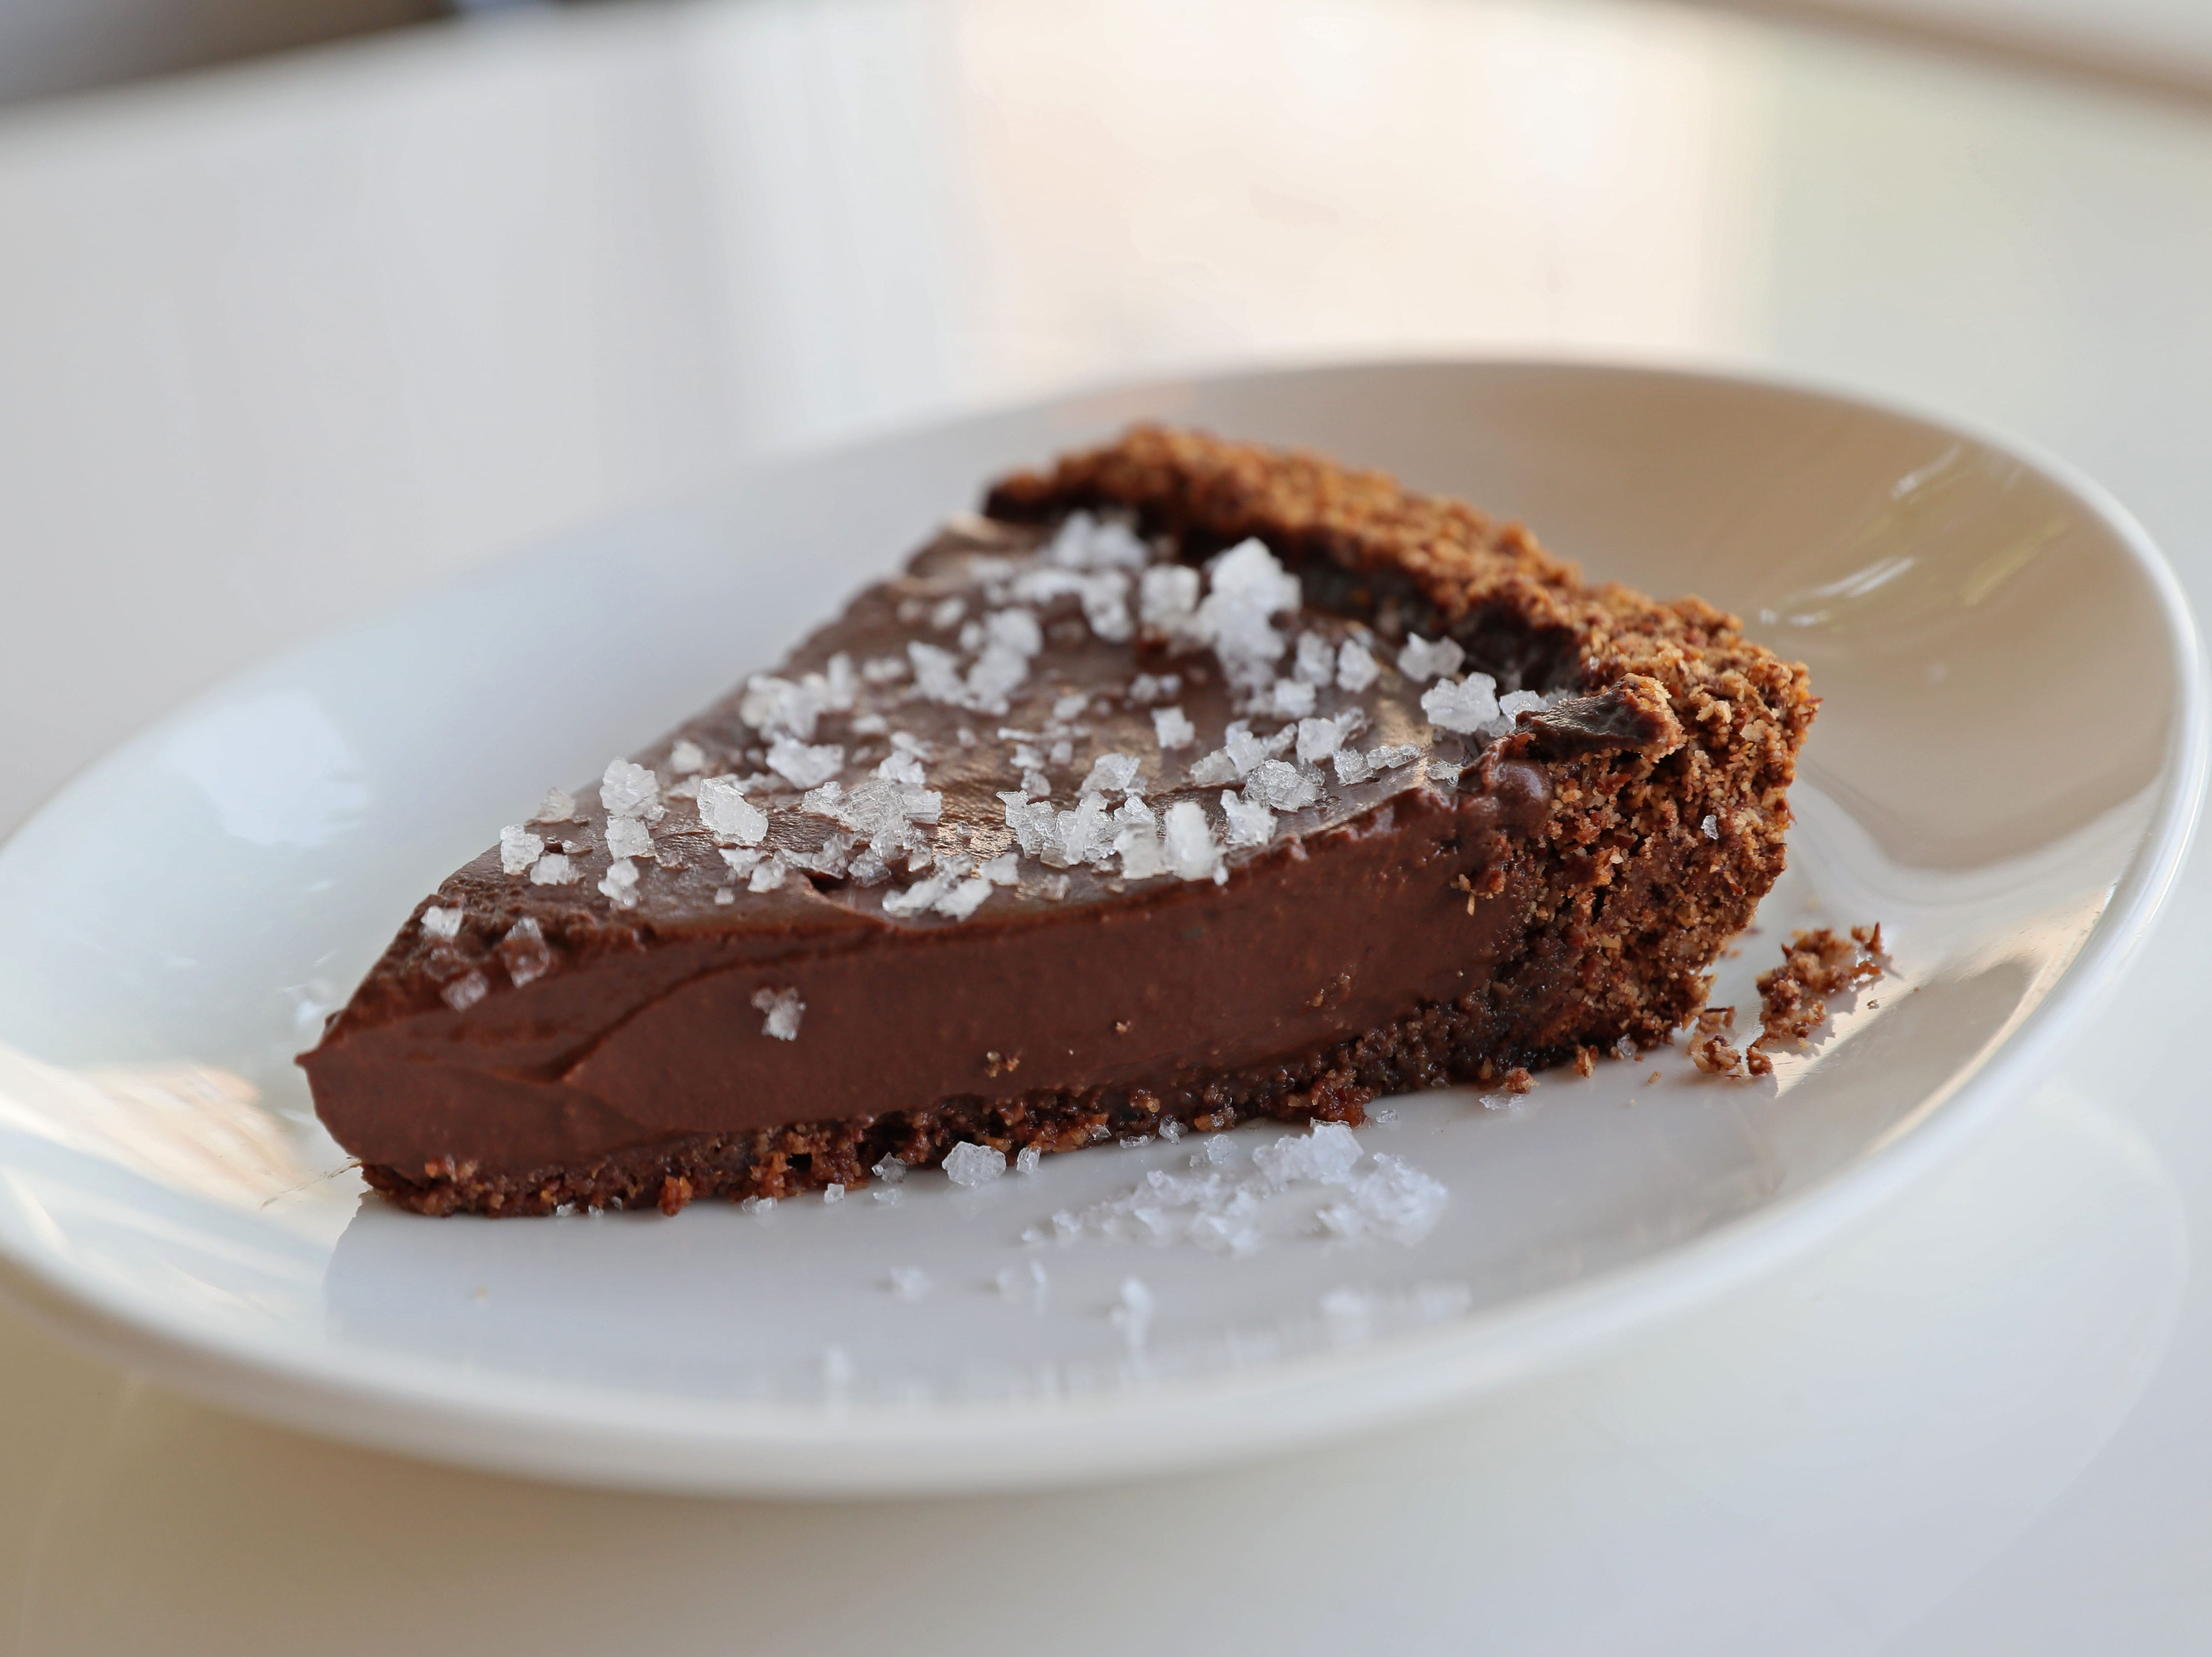 The chocolate salted tart has sweet plate appeal at Celesta.